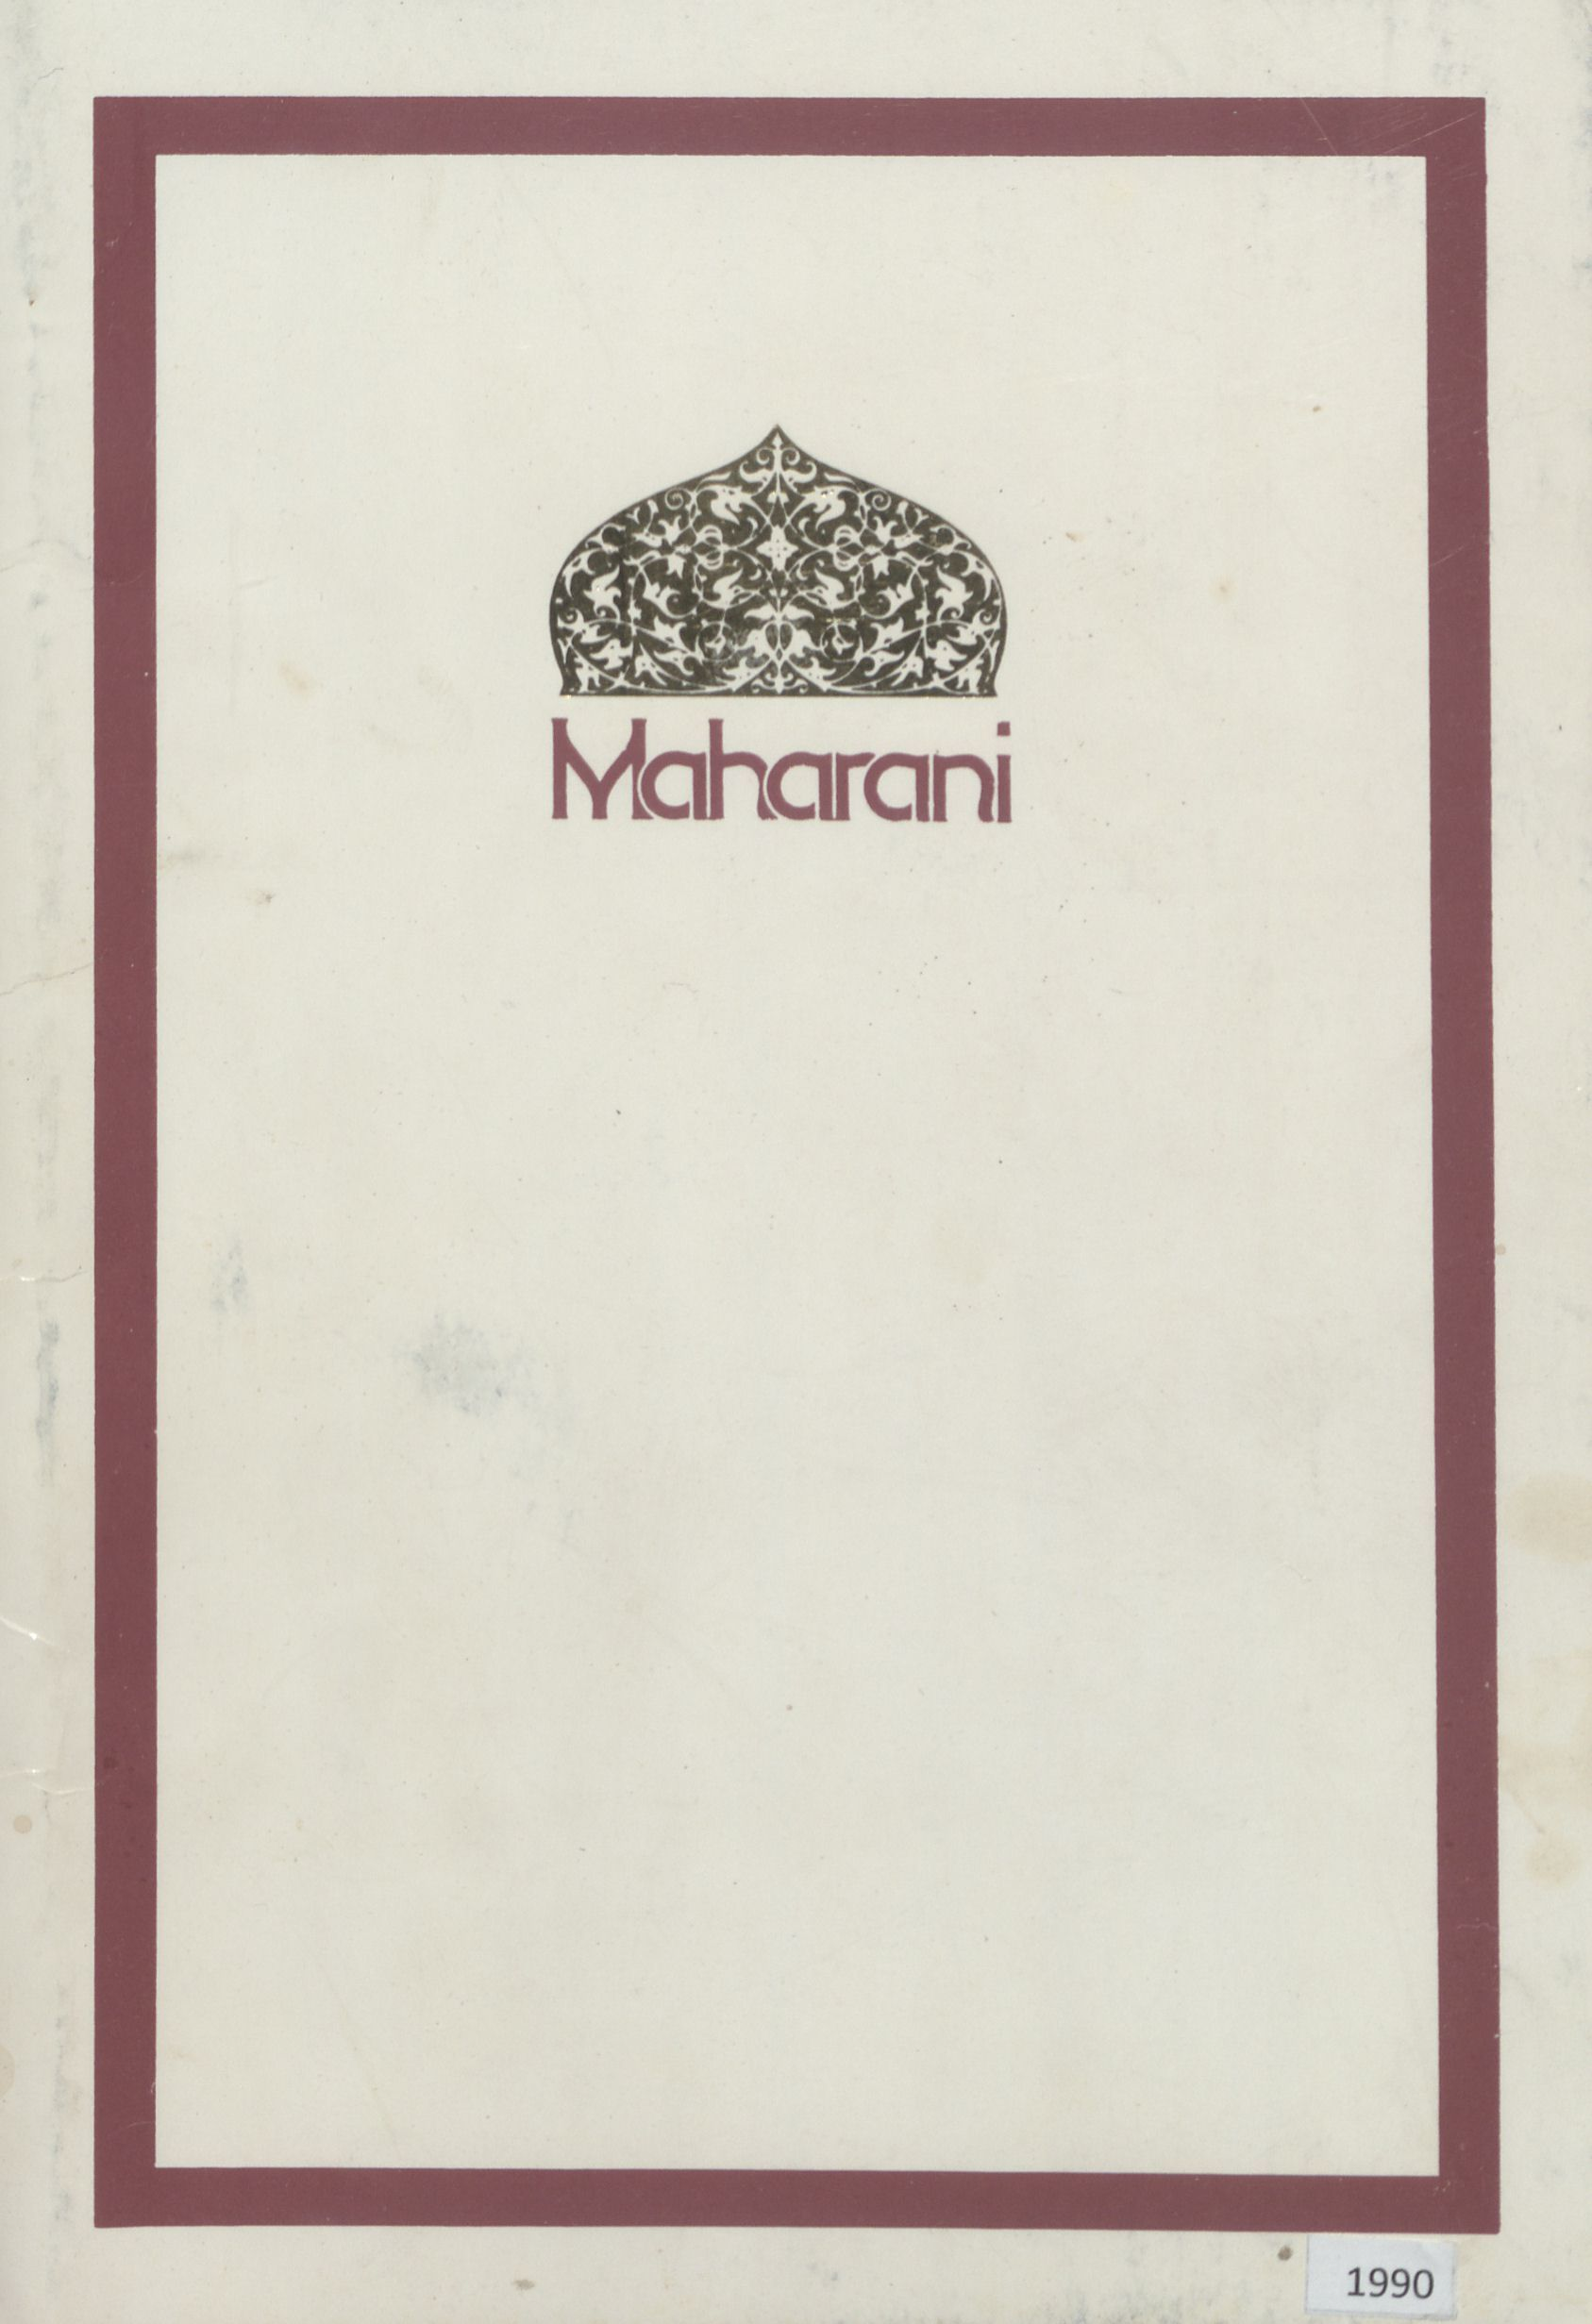 Maharani, Les Saisons Restaurant & Gourmet Wine Evening